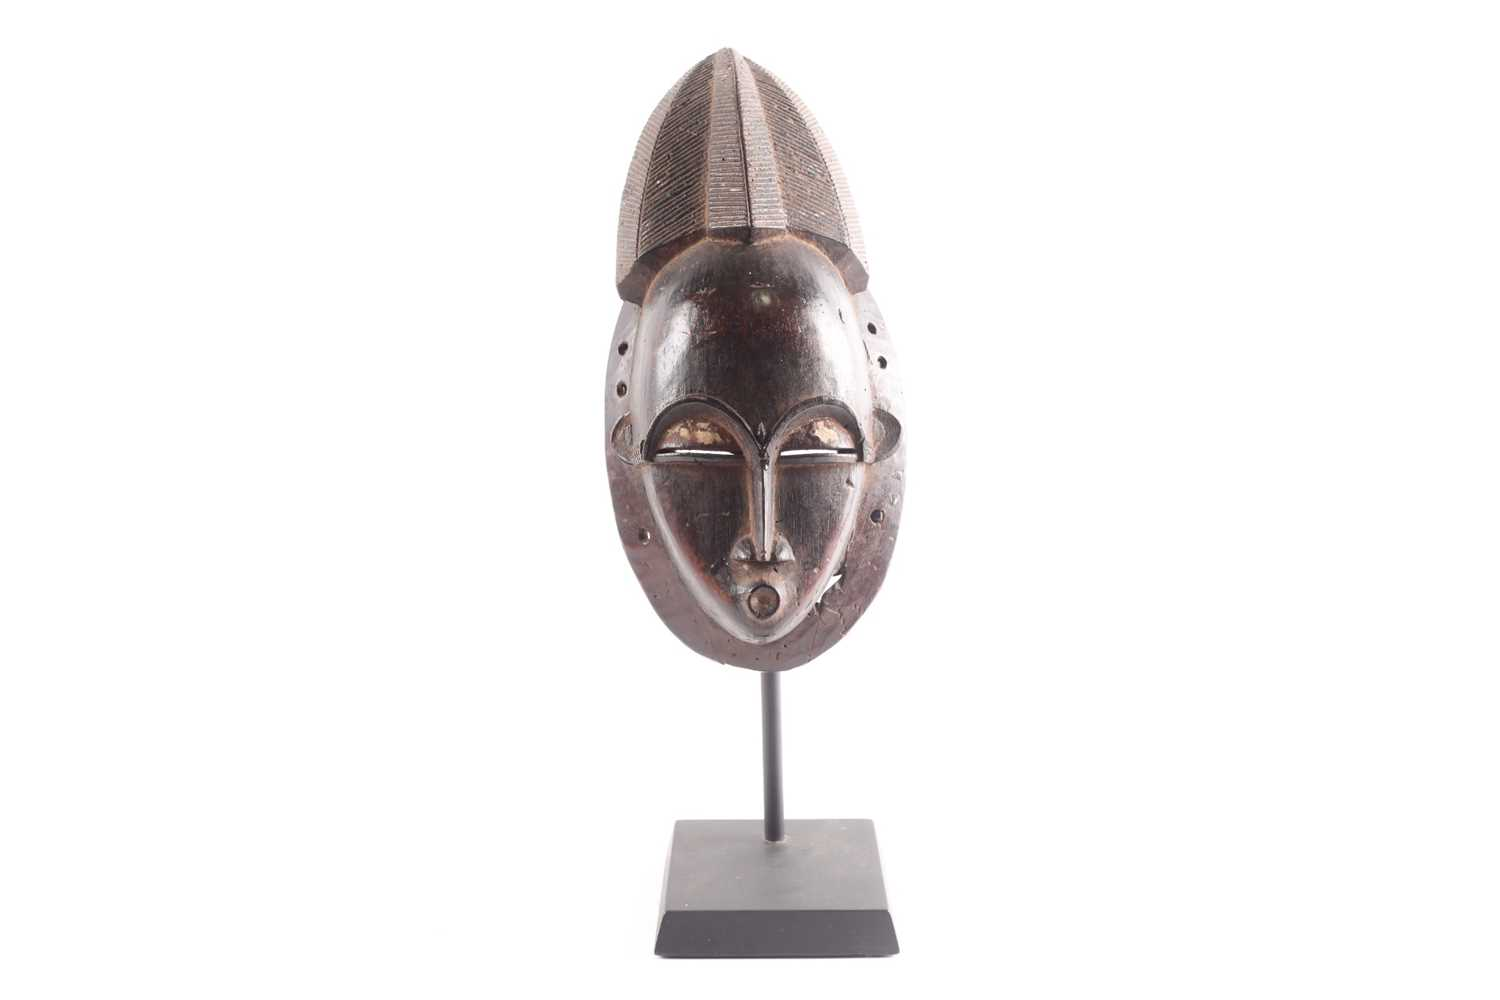 A Baule portrait mask, Gba Gba, Ivory Coast, the pointed coiffure with linear carving, above a large - Image 4 of 4